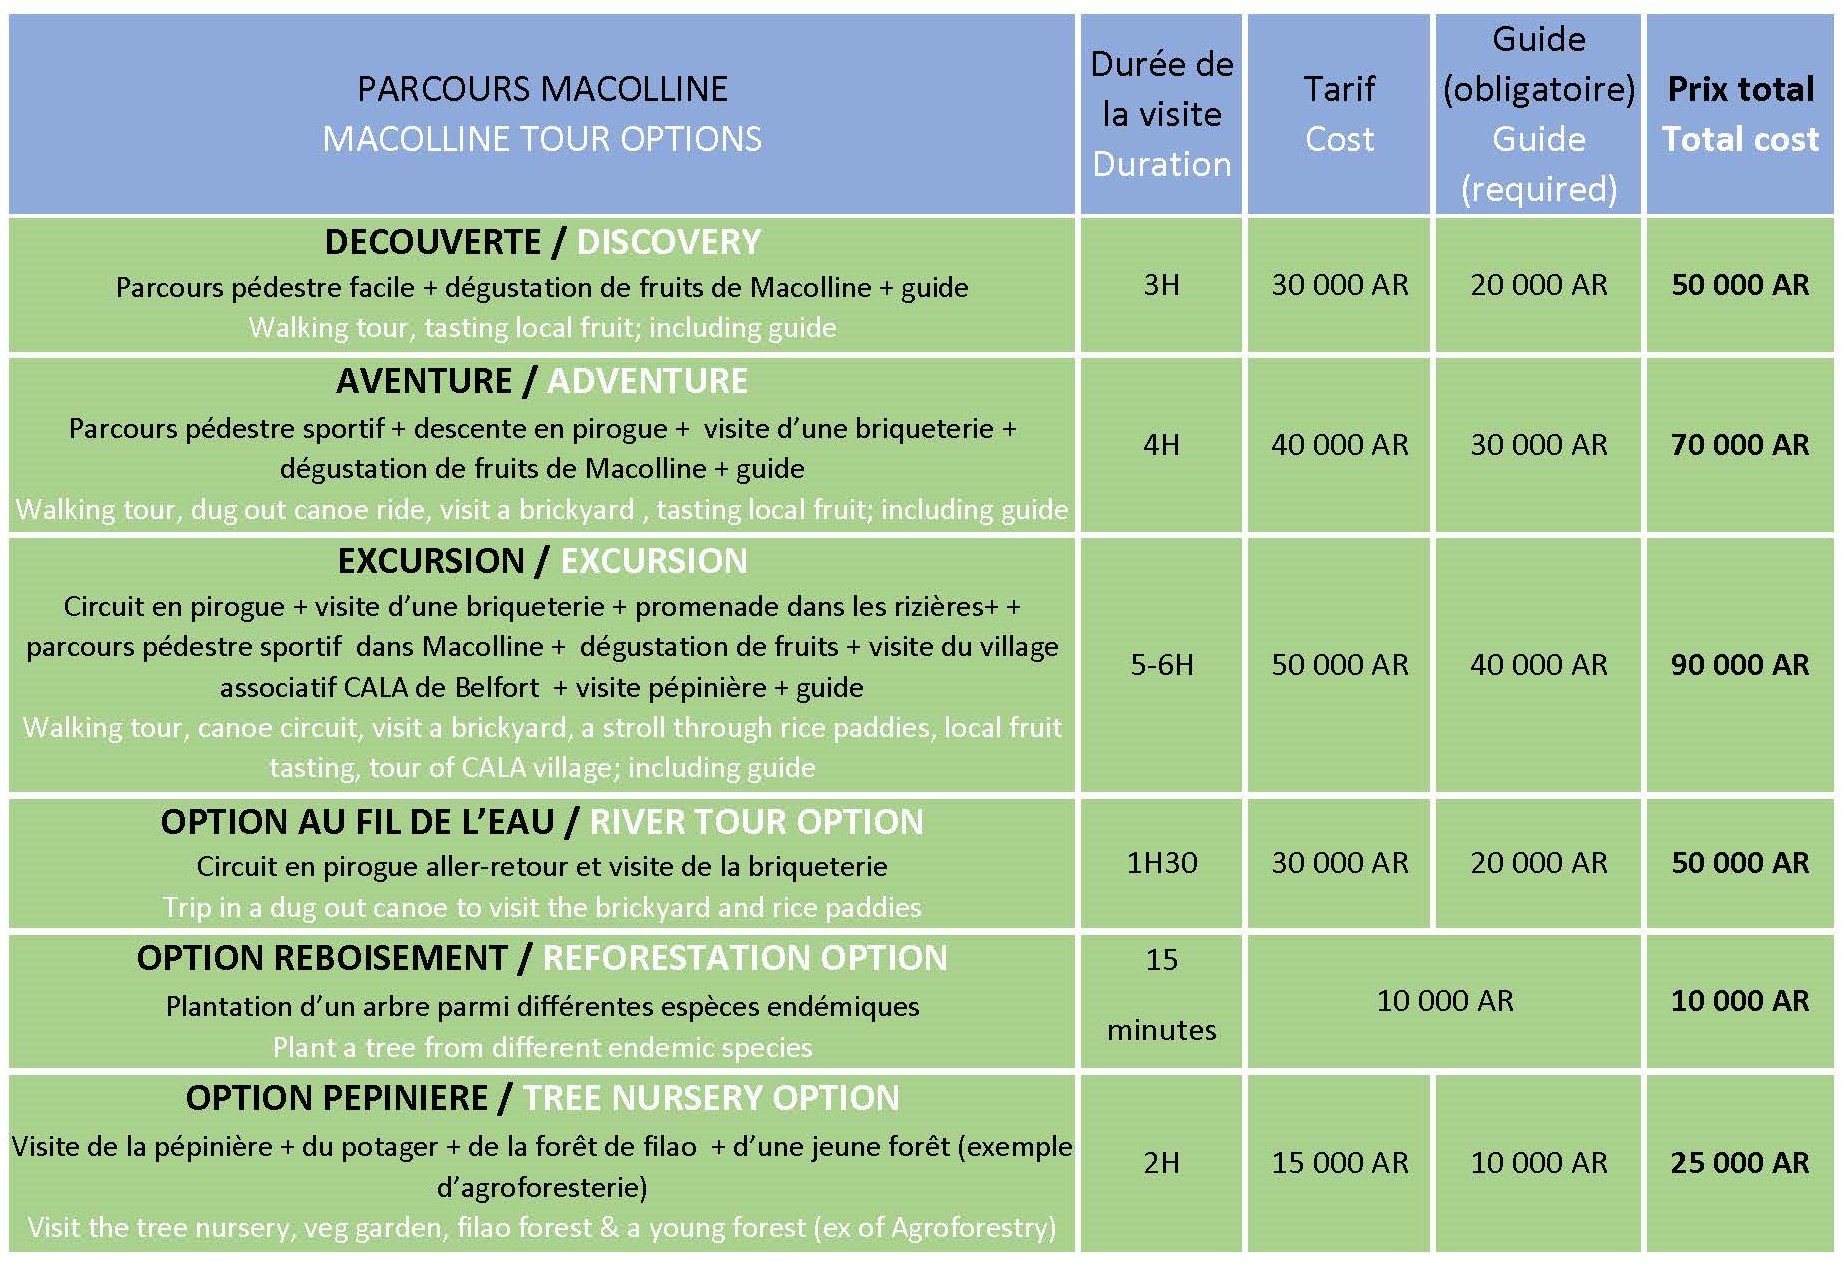 MACOLLINE flyer prices bilingual 2020 tourist prices_Page_1